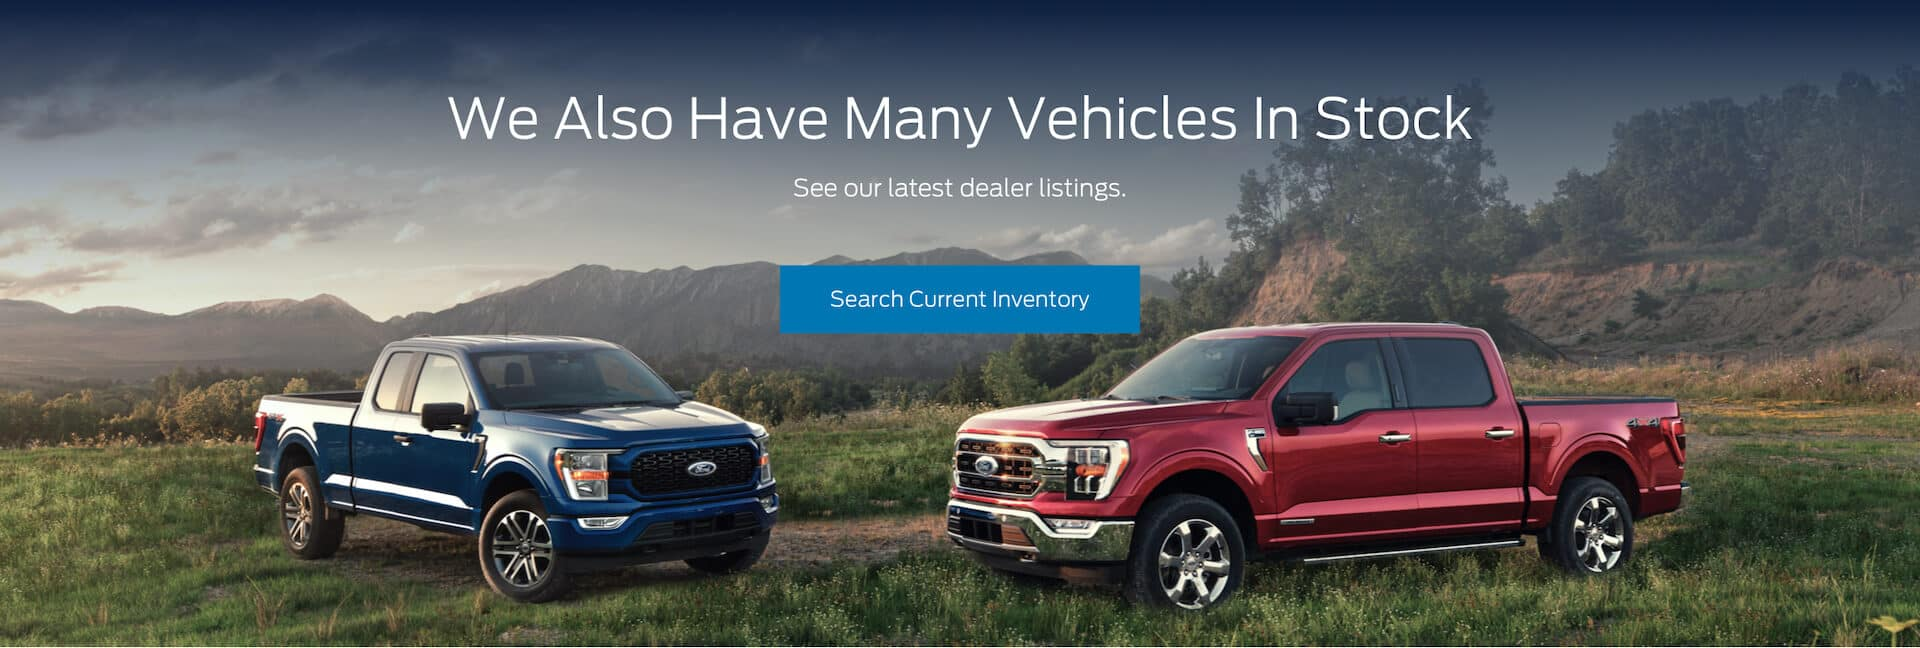 We Also have many vehicles in stock See our latest dealer listings. Search Current Inventory